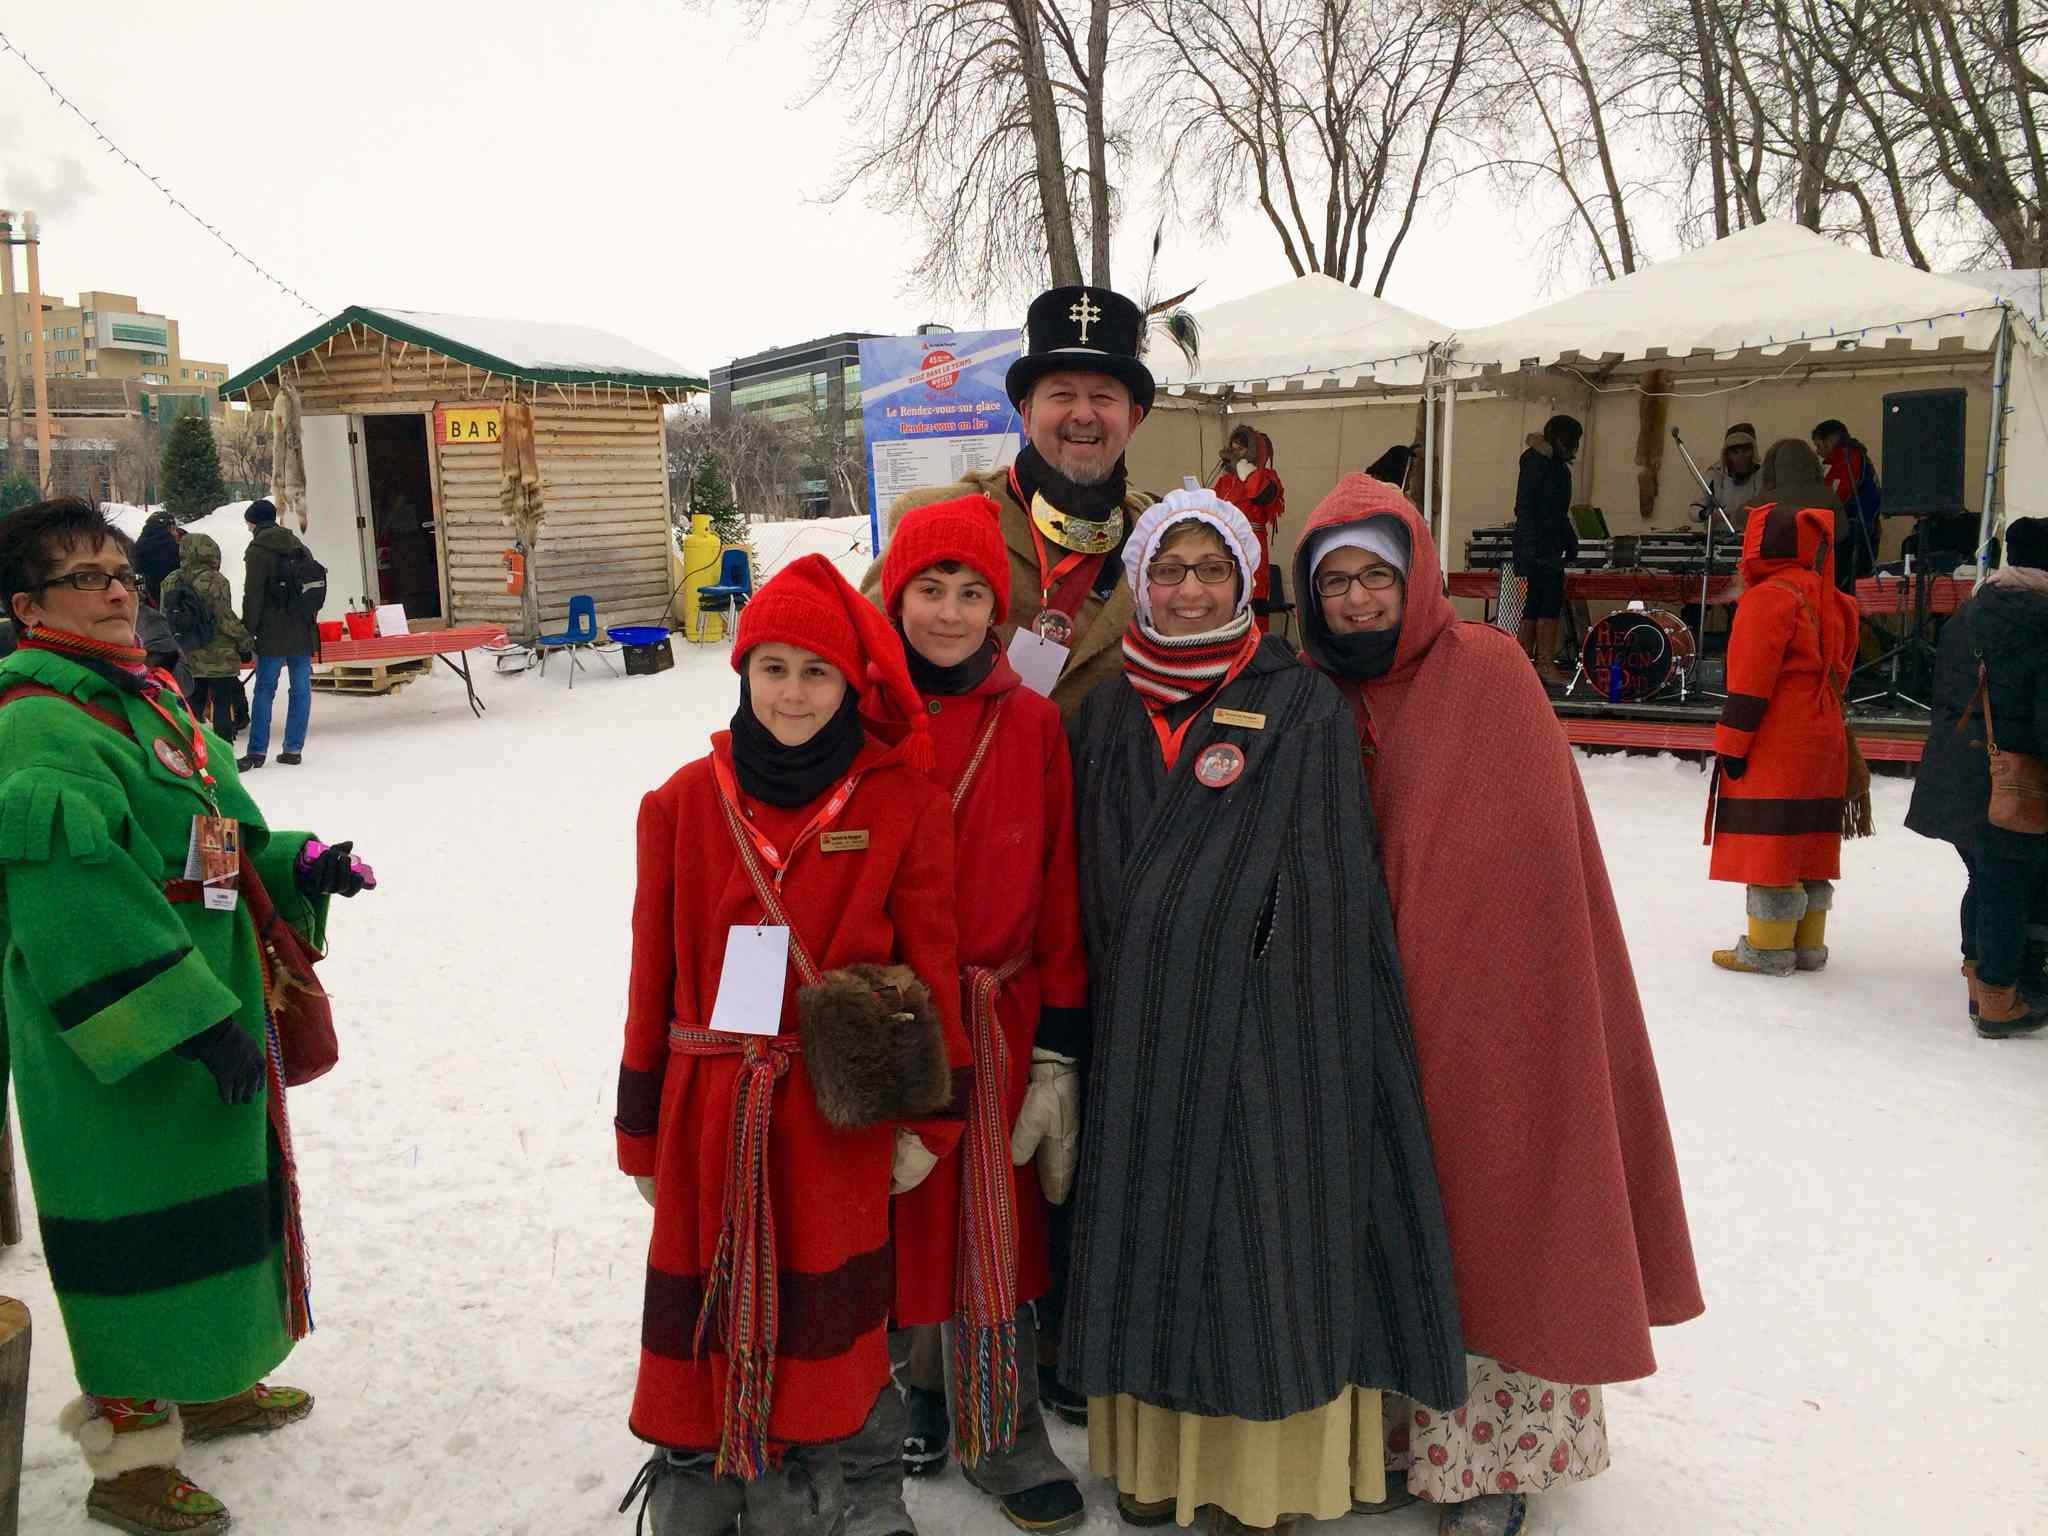 Festival du Voyageur family